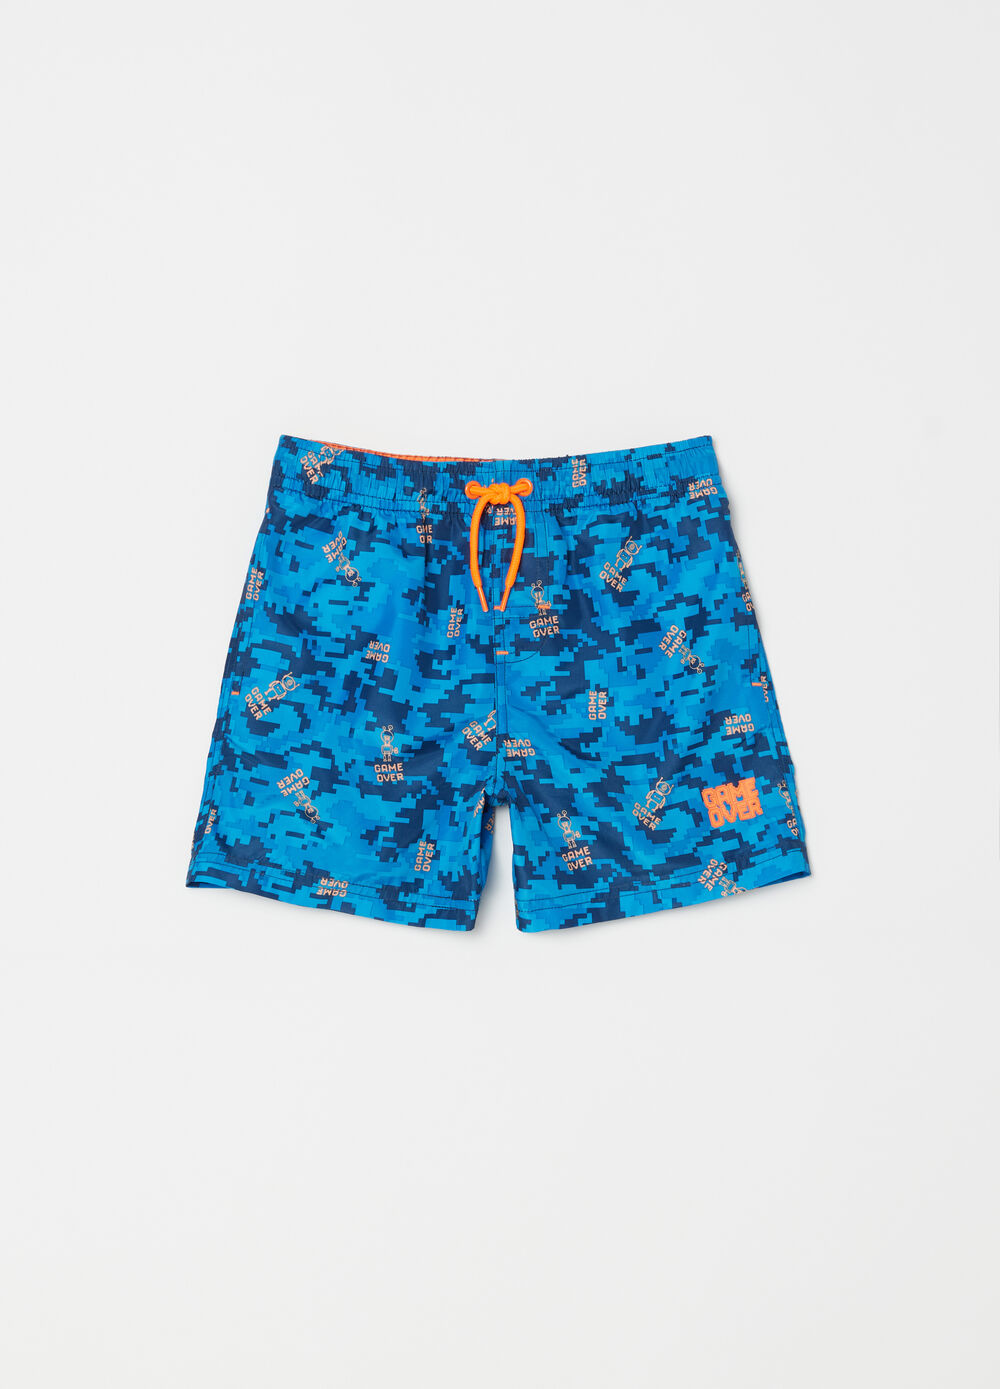 Shorts mare con coulisse camouflage